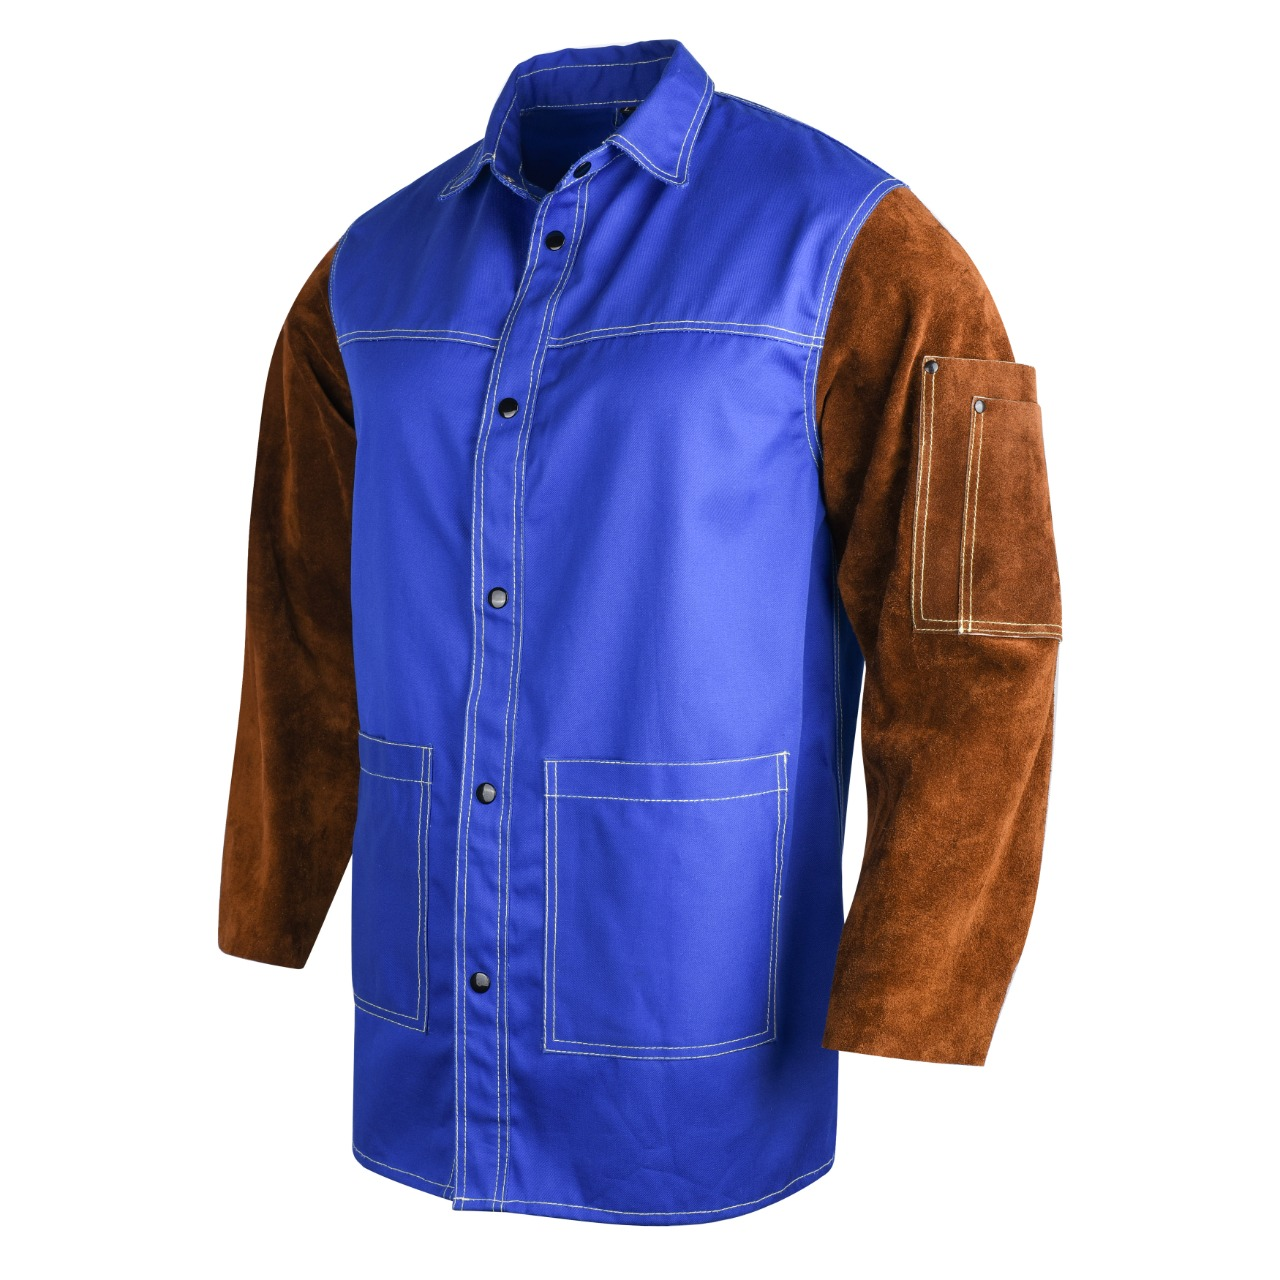 Cotton welding jacket high quality FR cotton and cowhide split leather jacket for welders